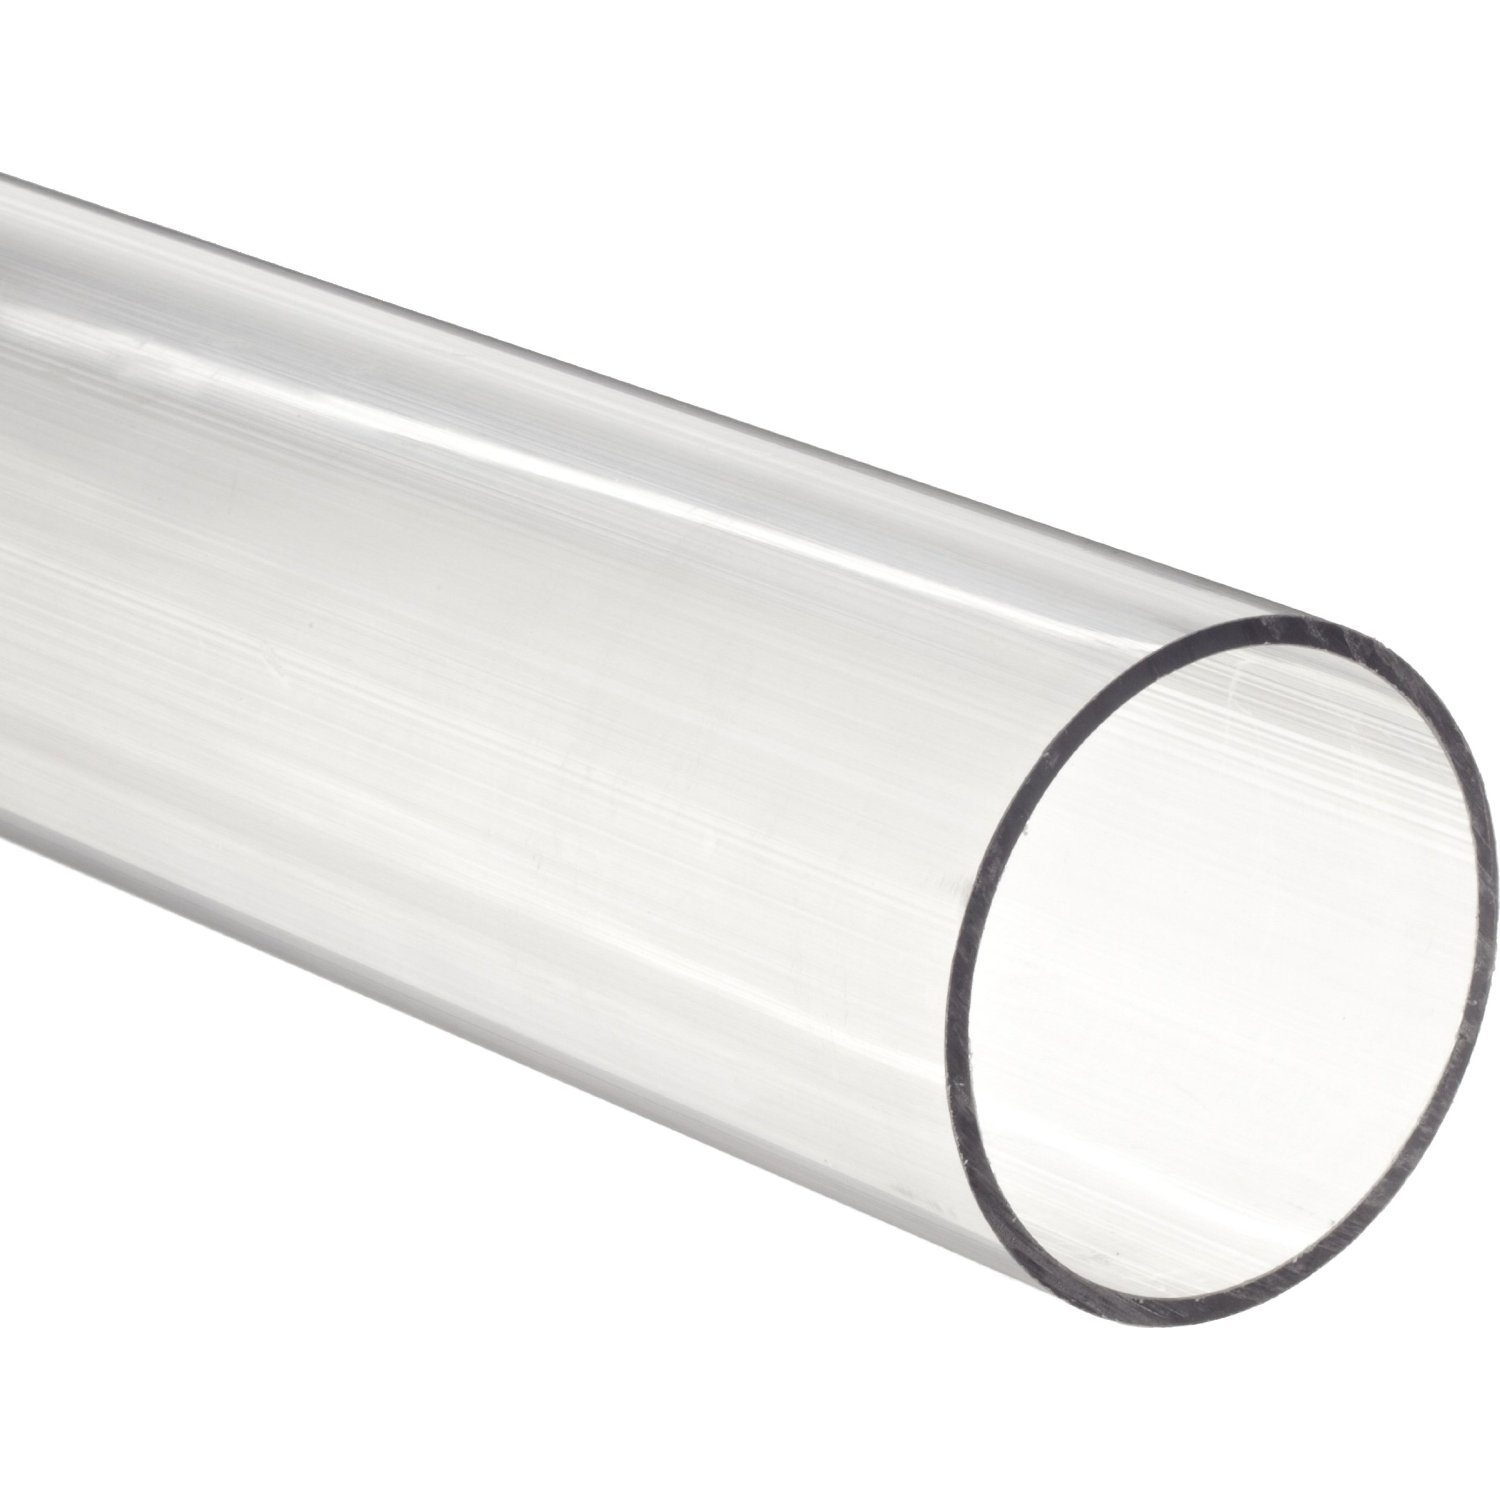 11-7/8'' Polycarbonate Round Tube (Clear) - 3-1/4'' ID x 3-1/2'' OD x 1/8'' Wall by Plastic-Craft